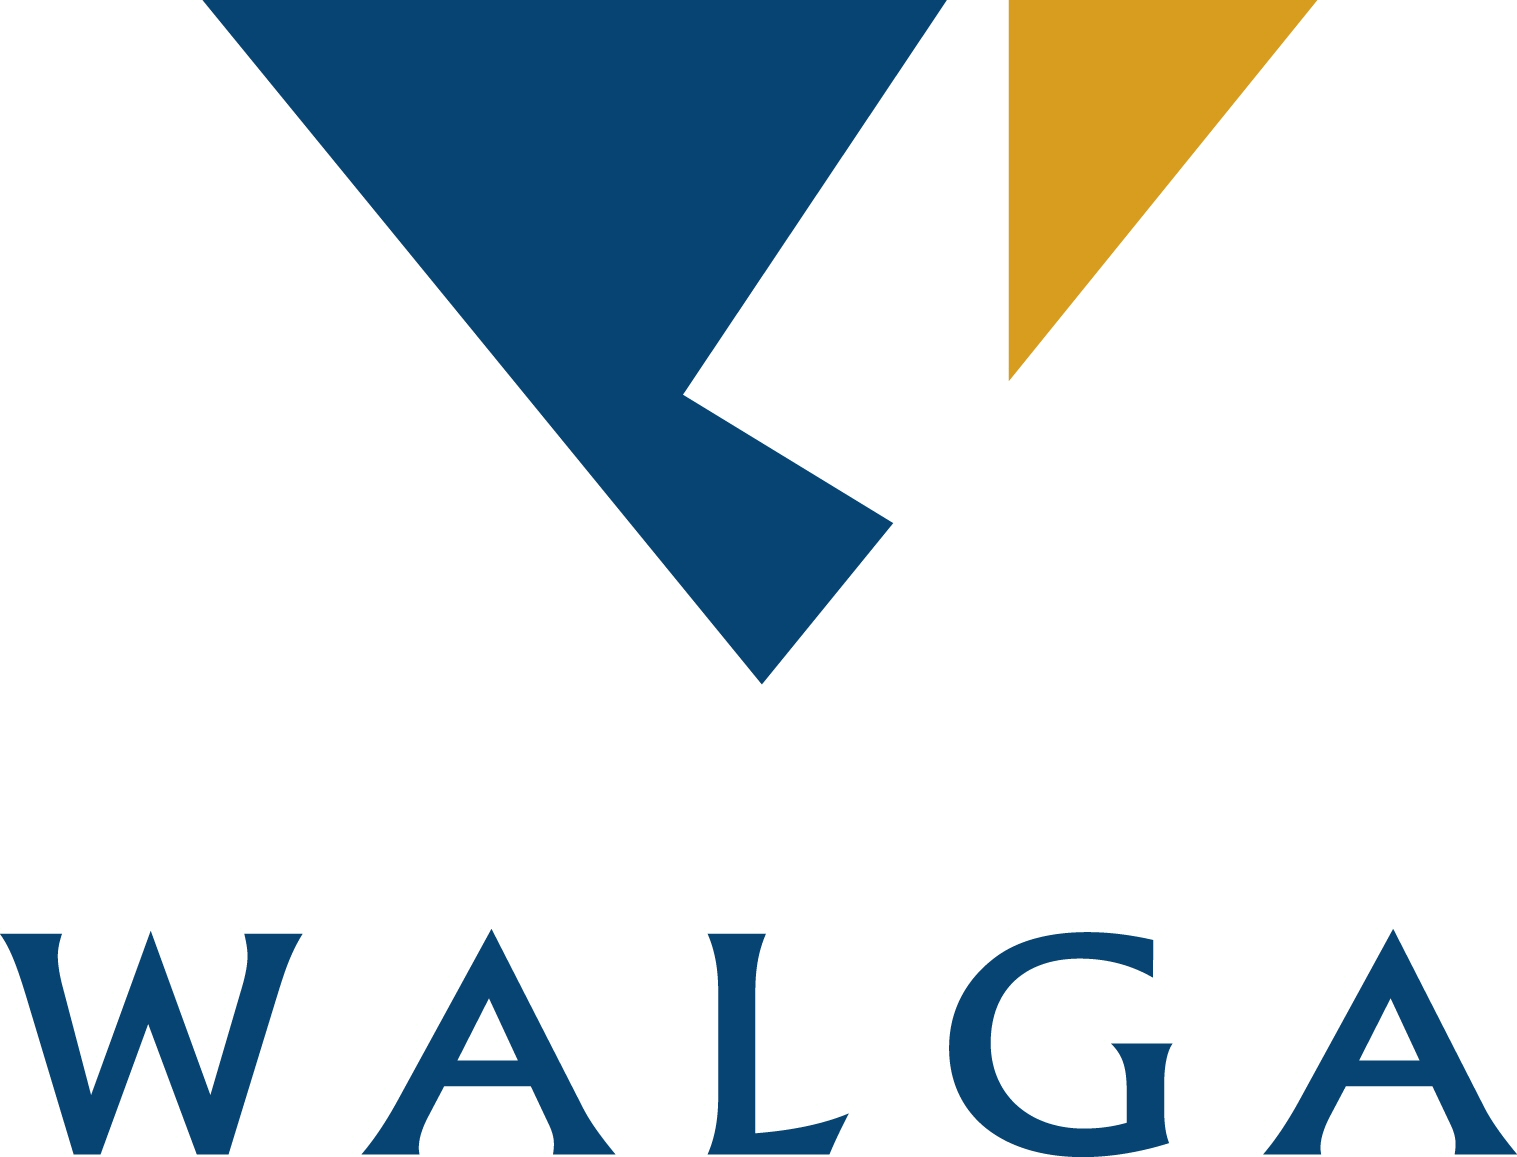 WALGA Western Australia Local Government Association